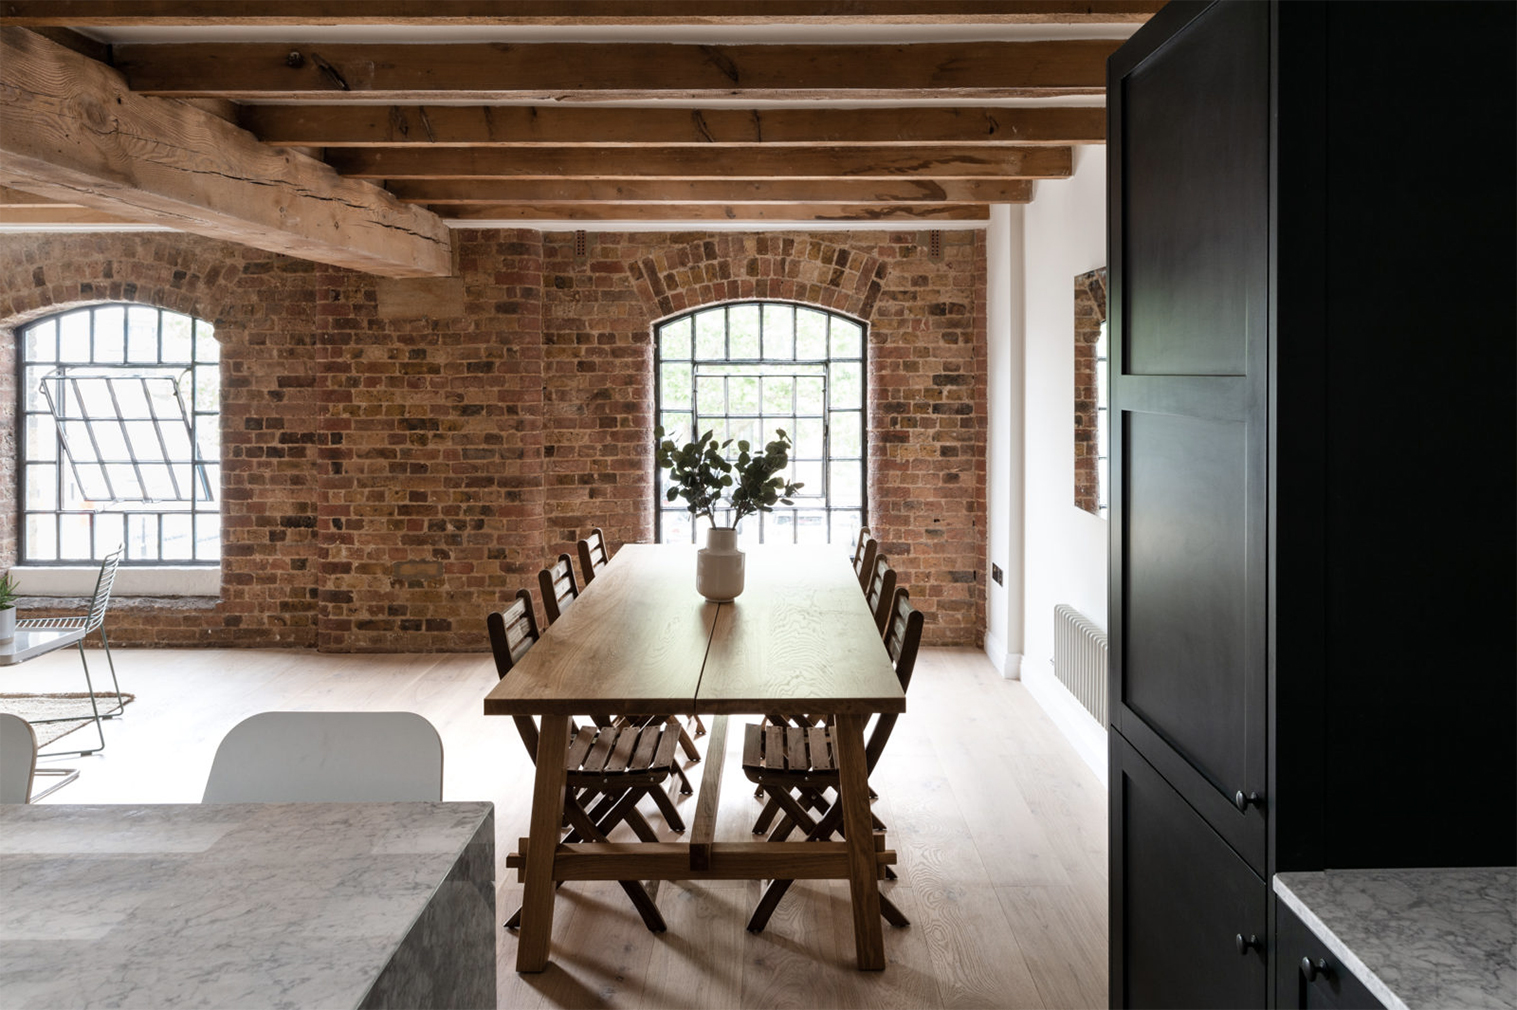 Converted tobacco warehouse loft asks for £765k in London's Royal Docks